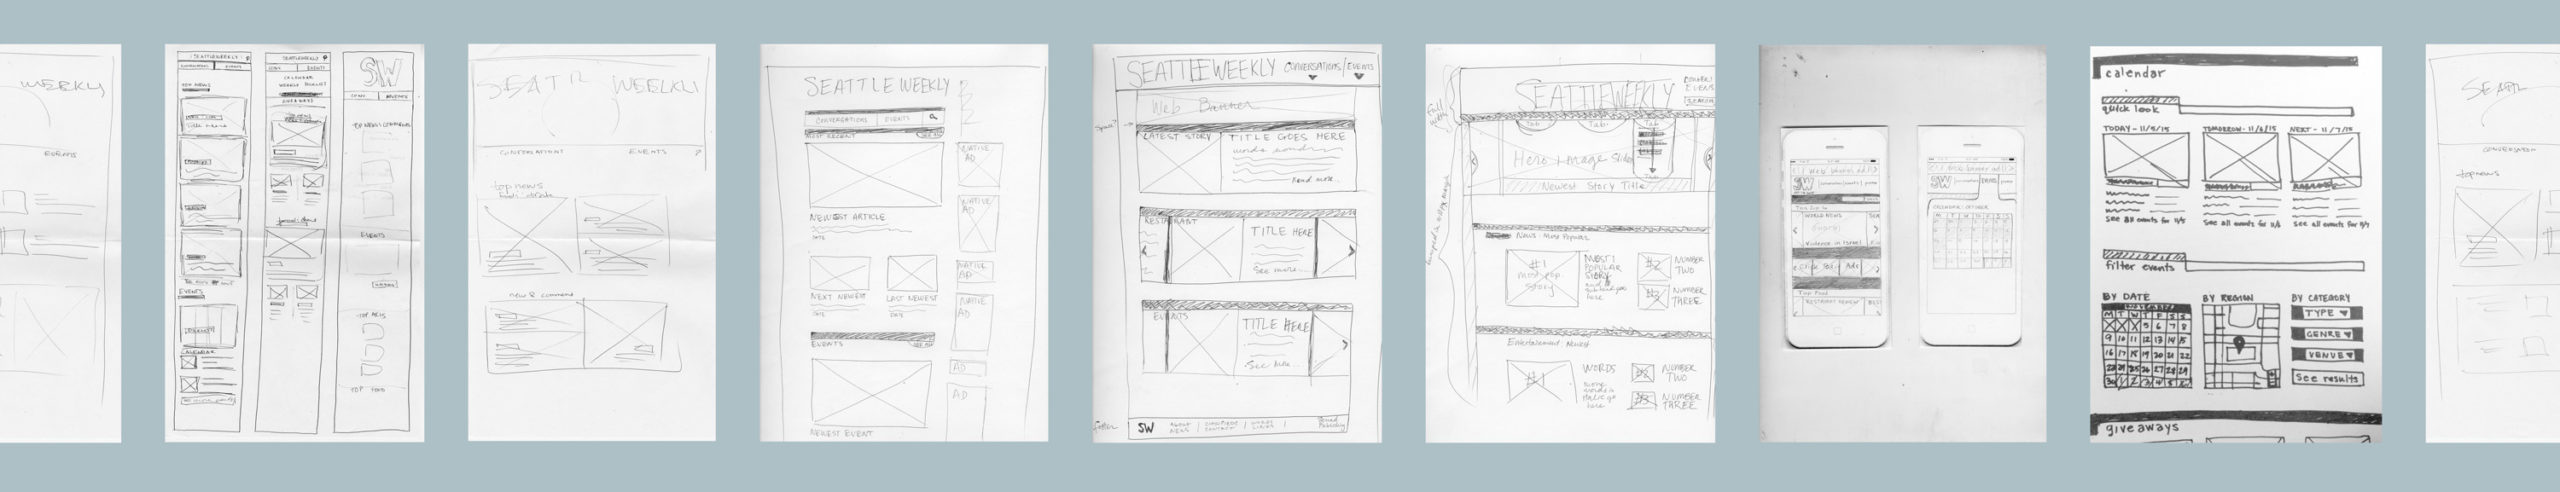 low-fidelity wireframes for Seattle Weekly redesign concept